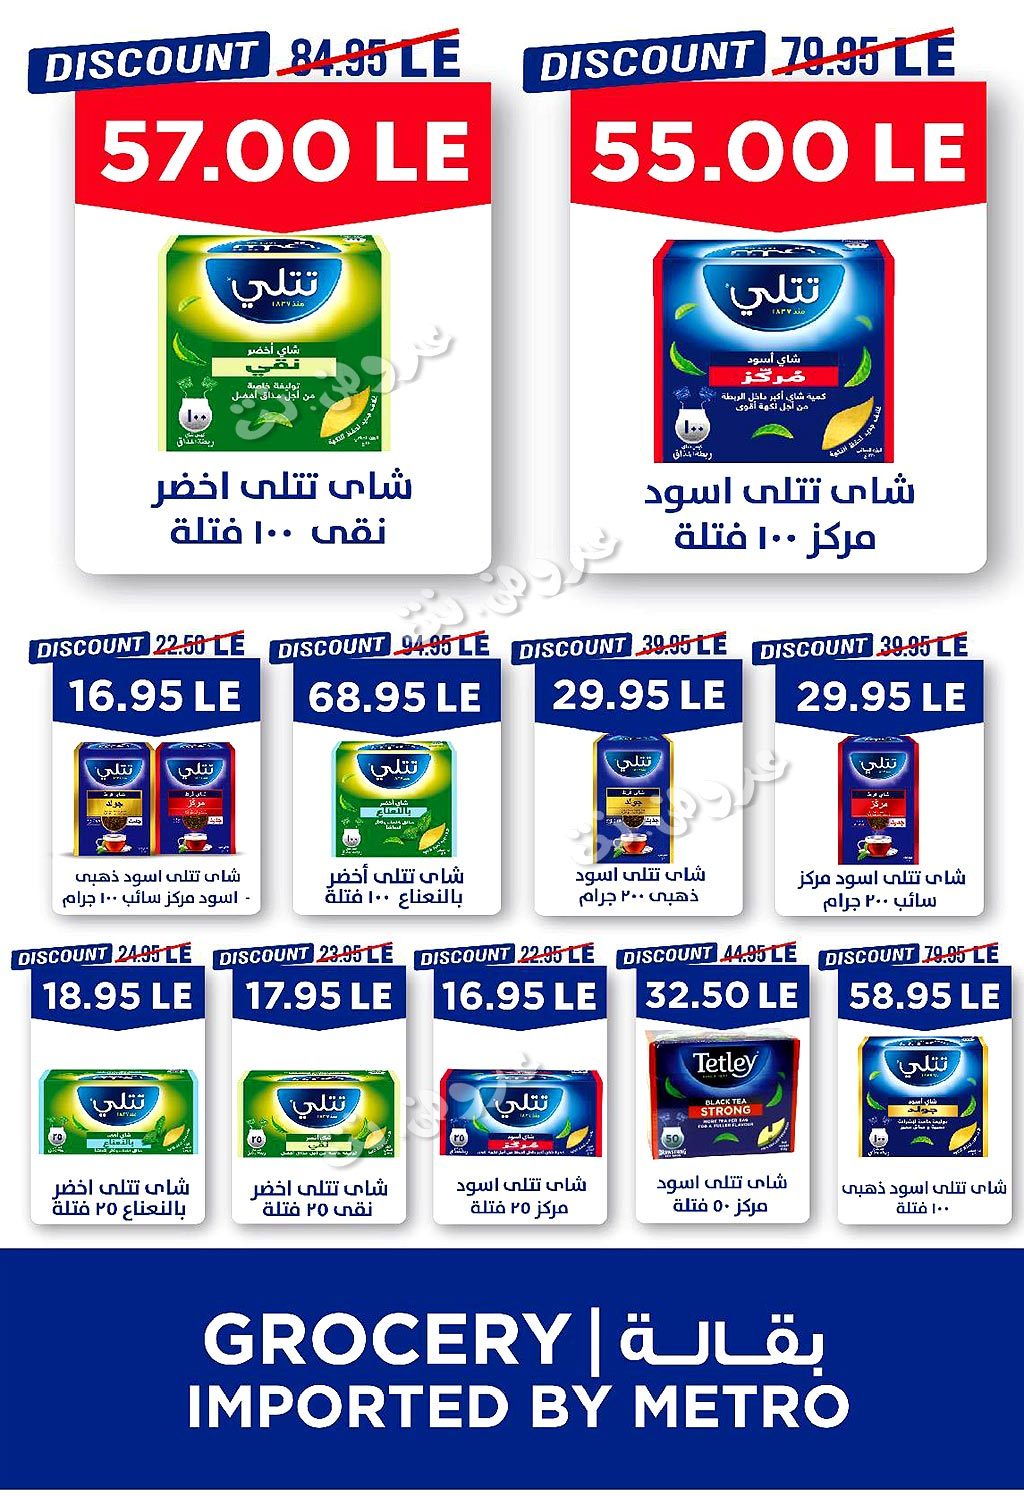 metro offers from 1may to 15may 2021 page number 22 عروض مترو من 1 مايو حتى 15 مايو 2021 صفحة رقم 22